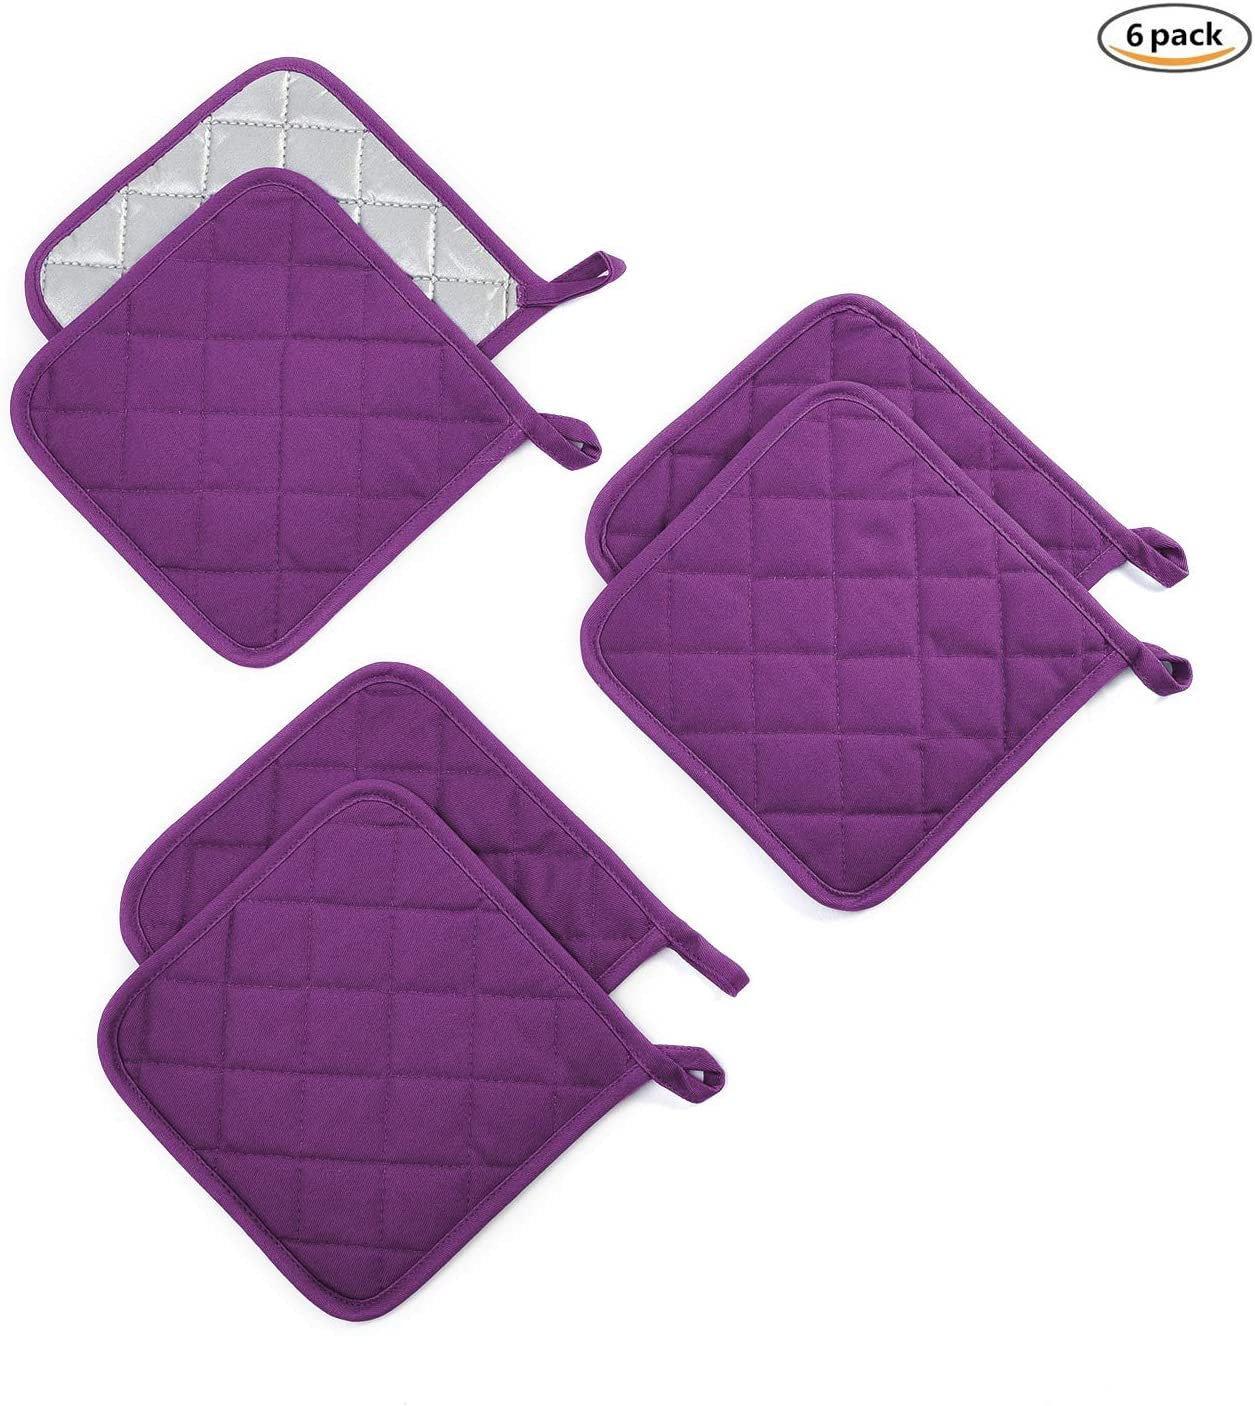 Jennice House Pot Holders Set Trivets Kitchen Heat Resistant Pure Cotton Coasters Hot Pads Potholders Set of 6 for Everyday Cooking and Baking by 7 x 7 Inch (Purple)